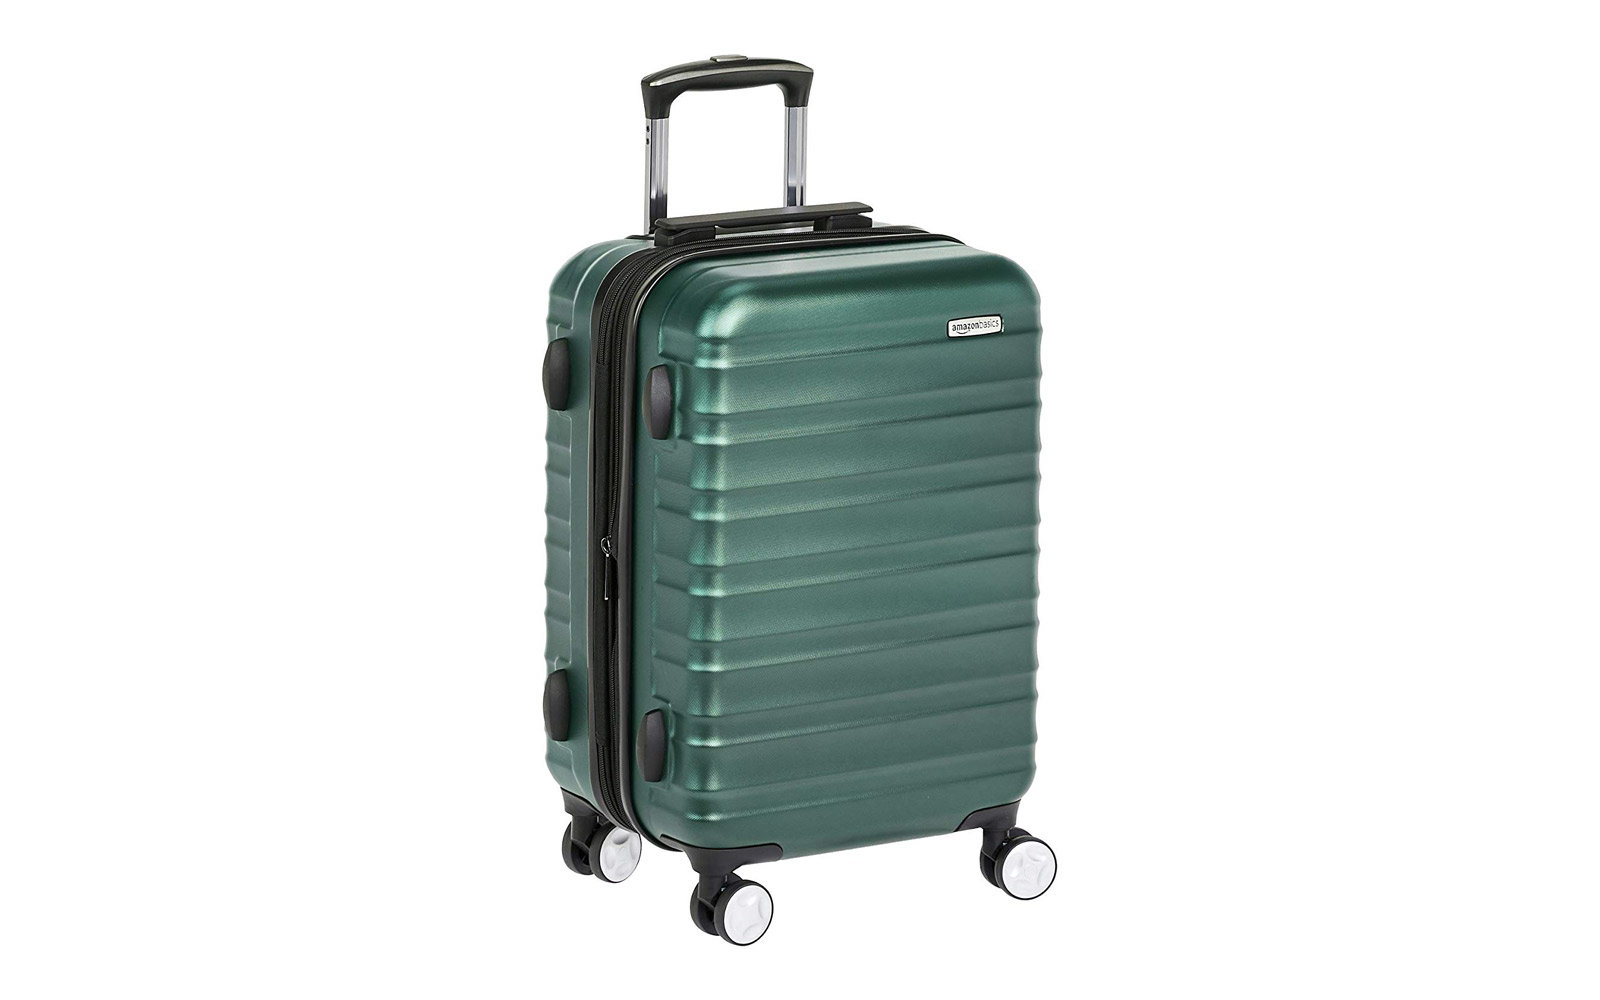 Best Affordable Carry-on  AmazonBasics 20-inch Hardside Spinner Luggage c13c64a81af3f